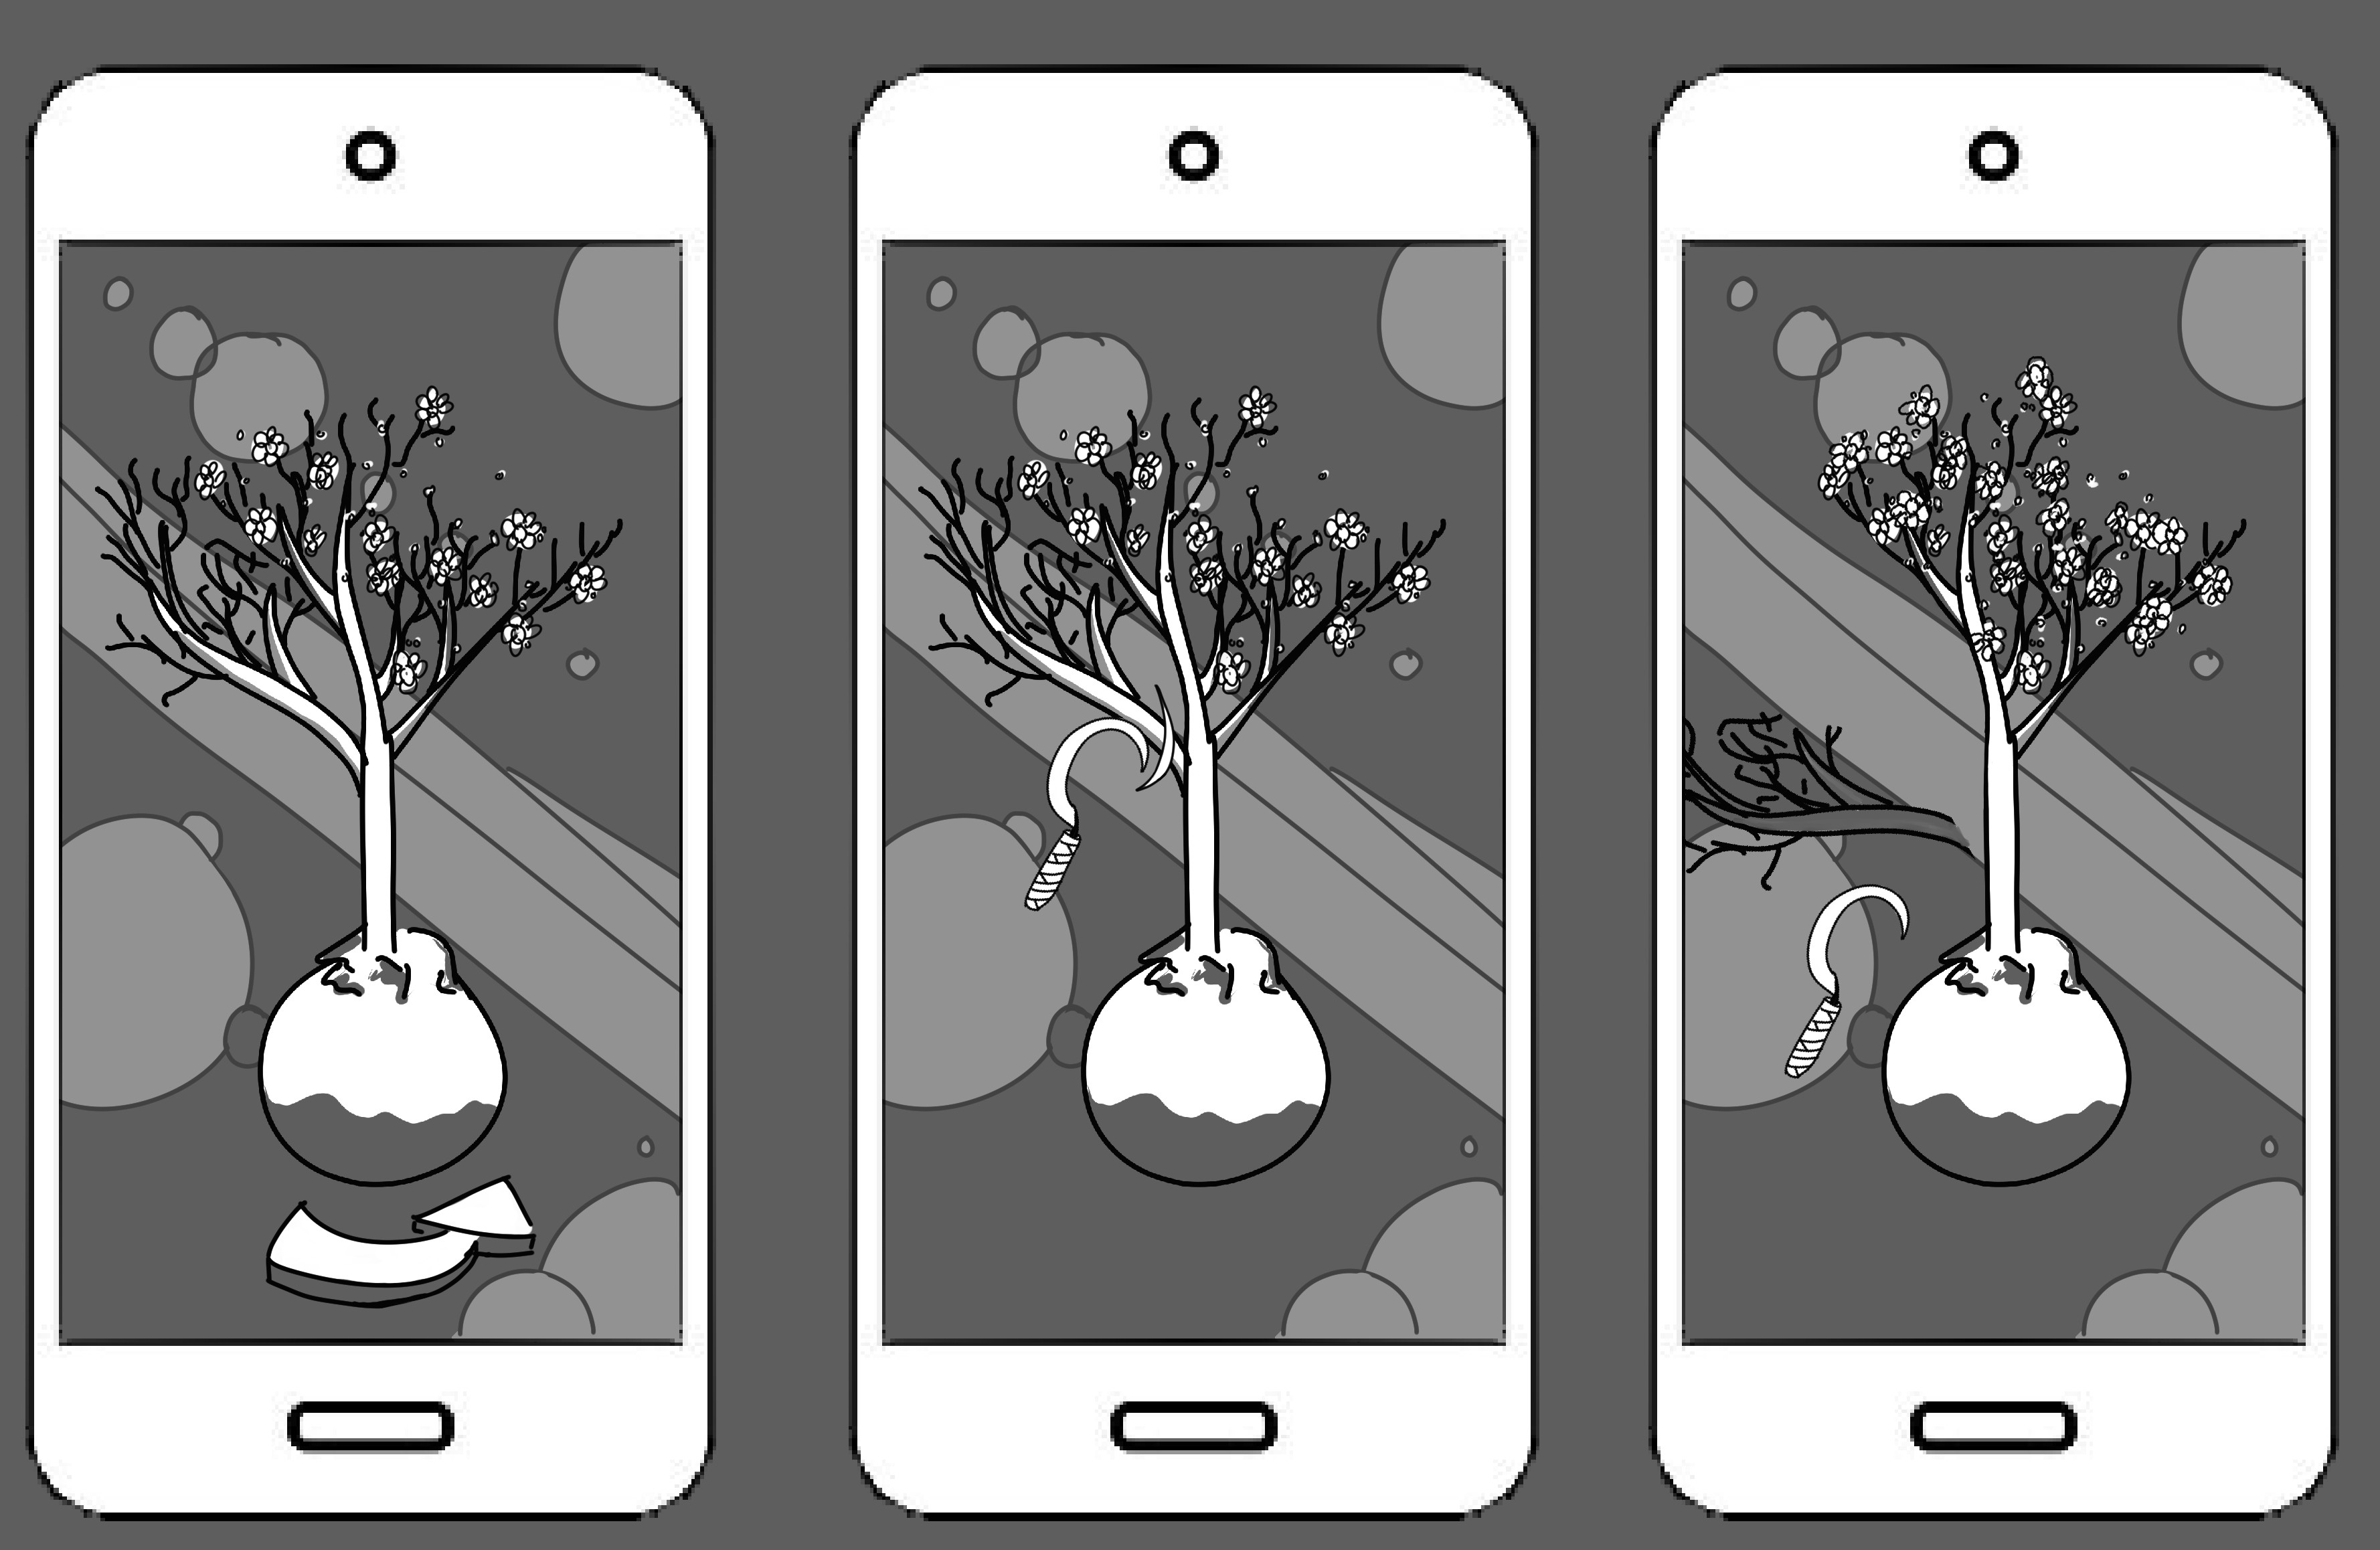 A tree pruning game